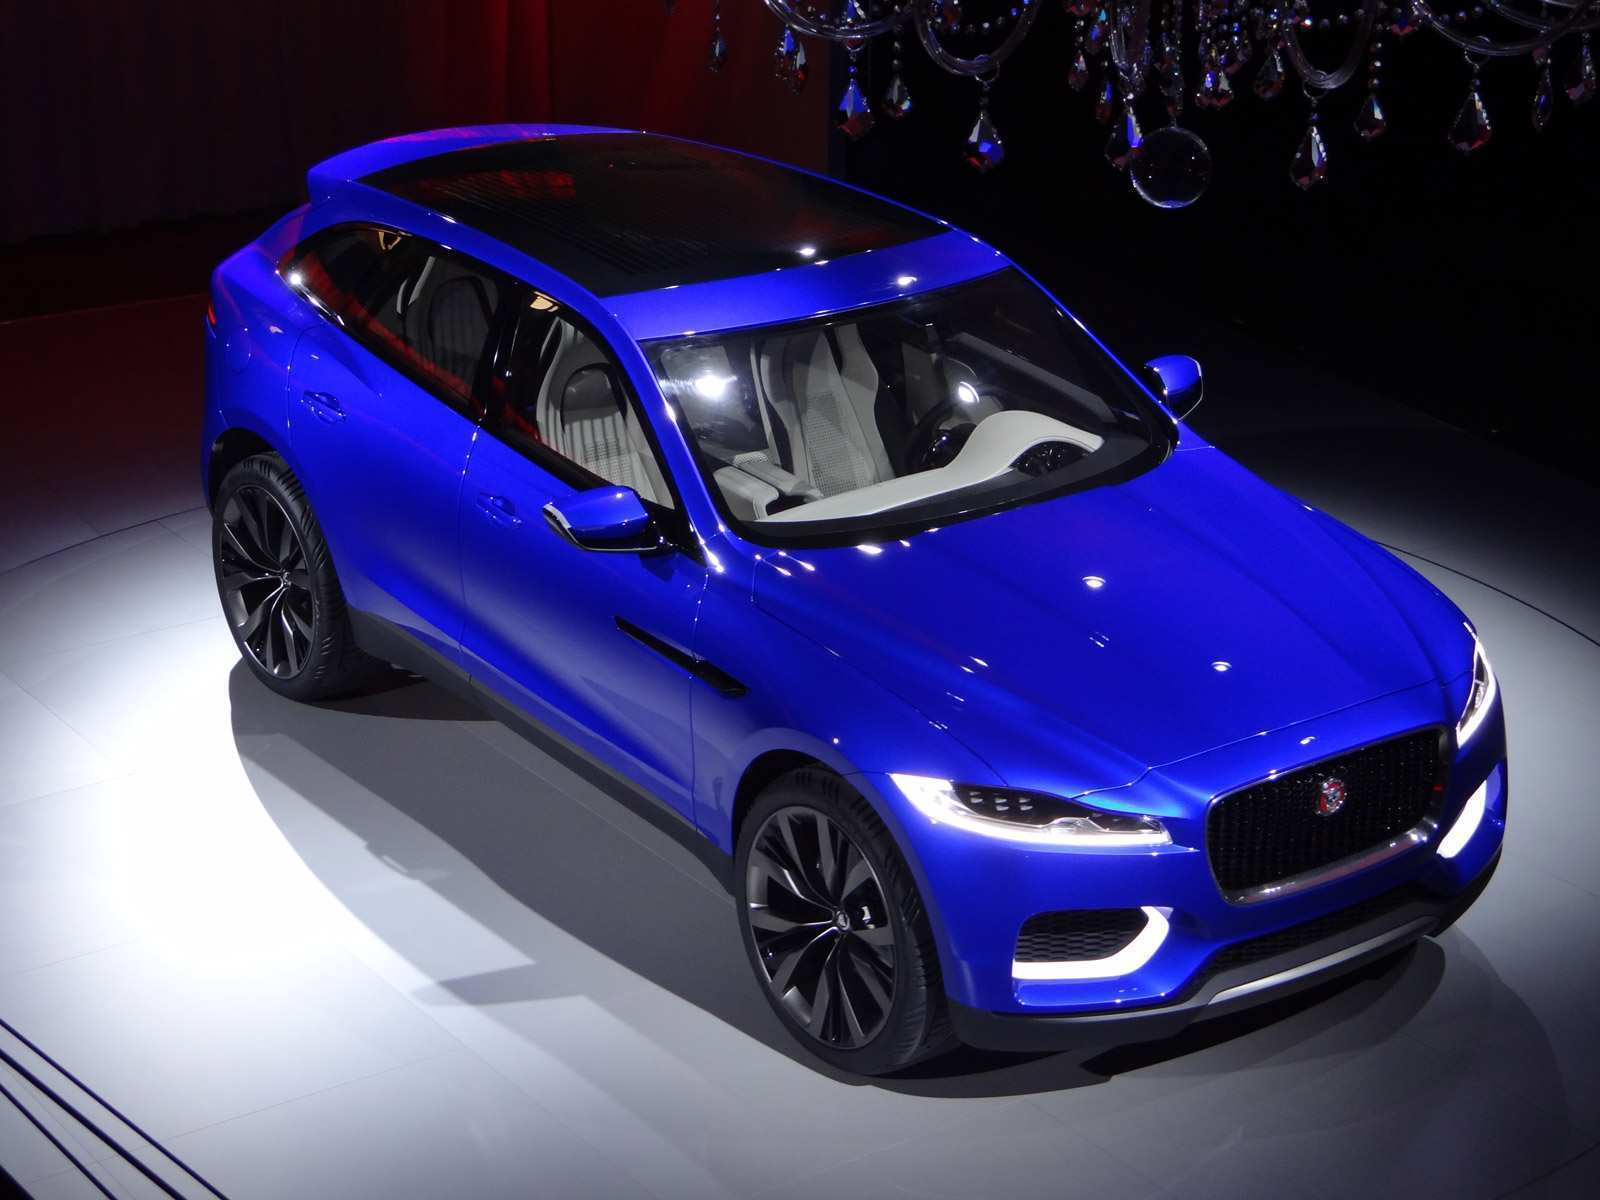 86 All New 2020 Jaguar C X17 Crossover Picture